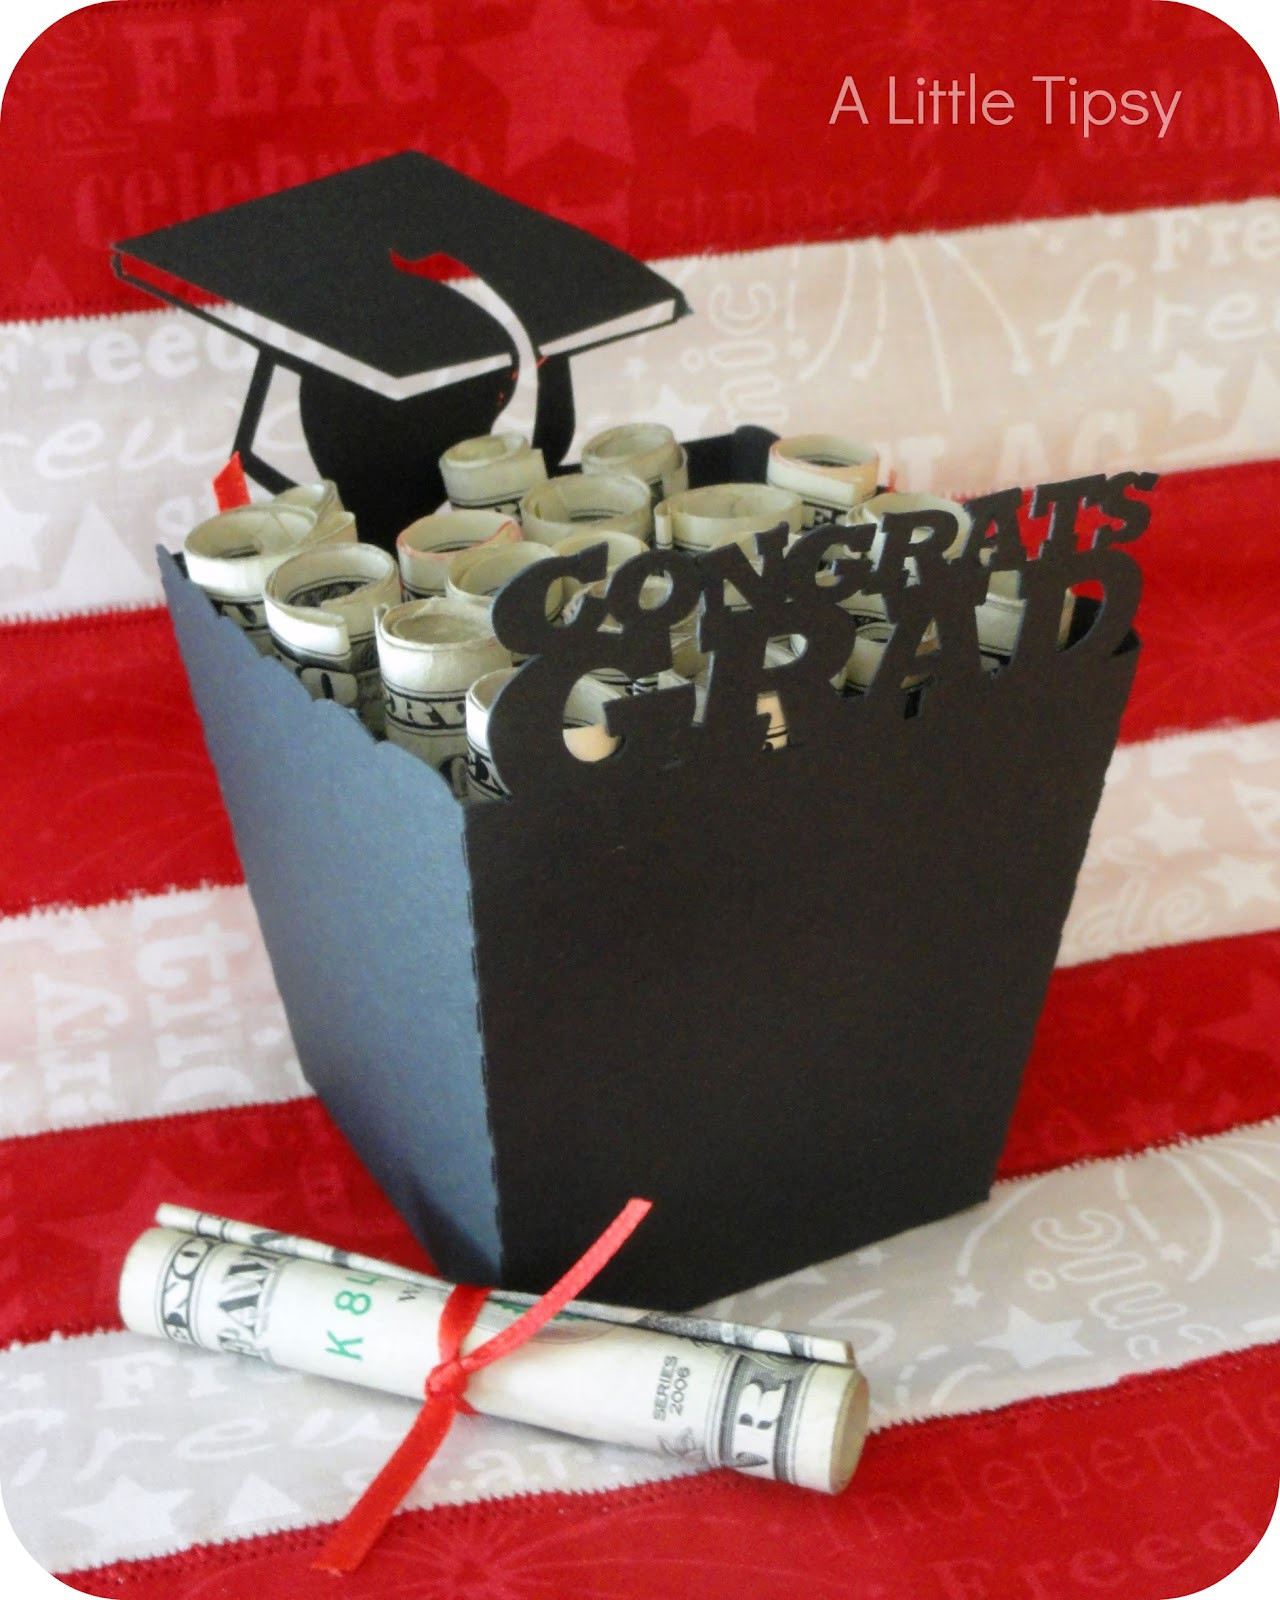 Masters Graduation Gift Ideas For Her  Last Minute Graduation Gift A Little Tipsy